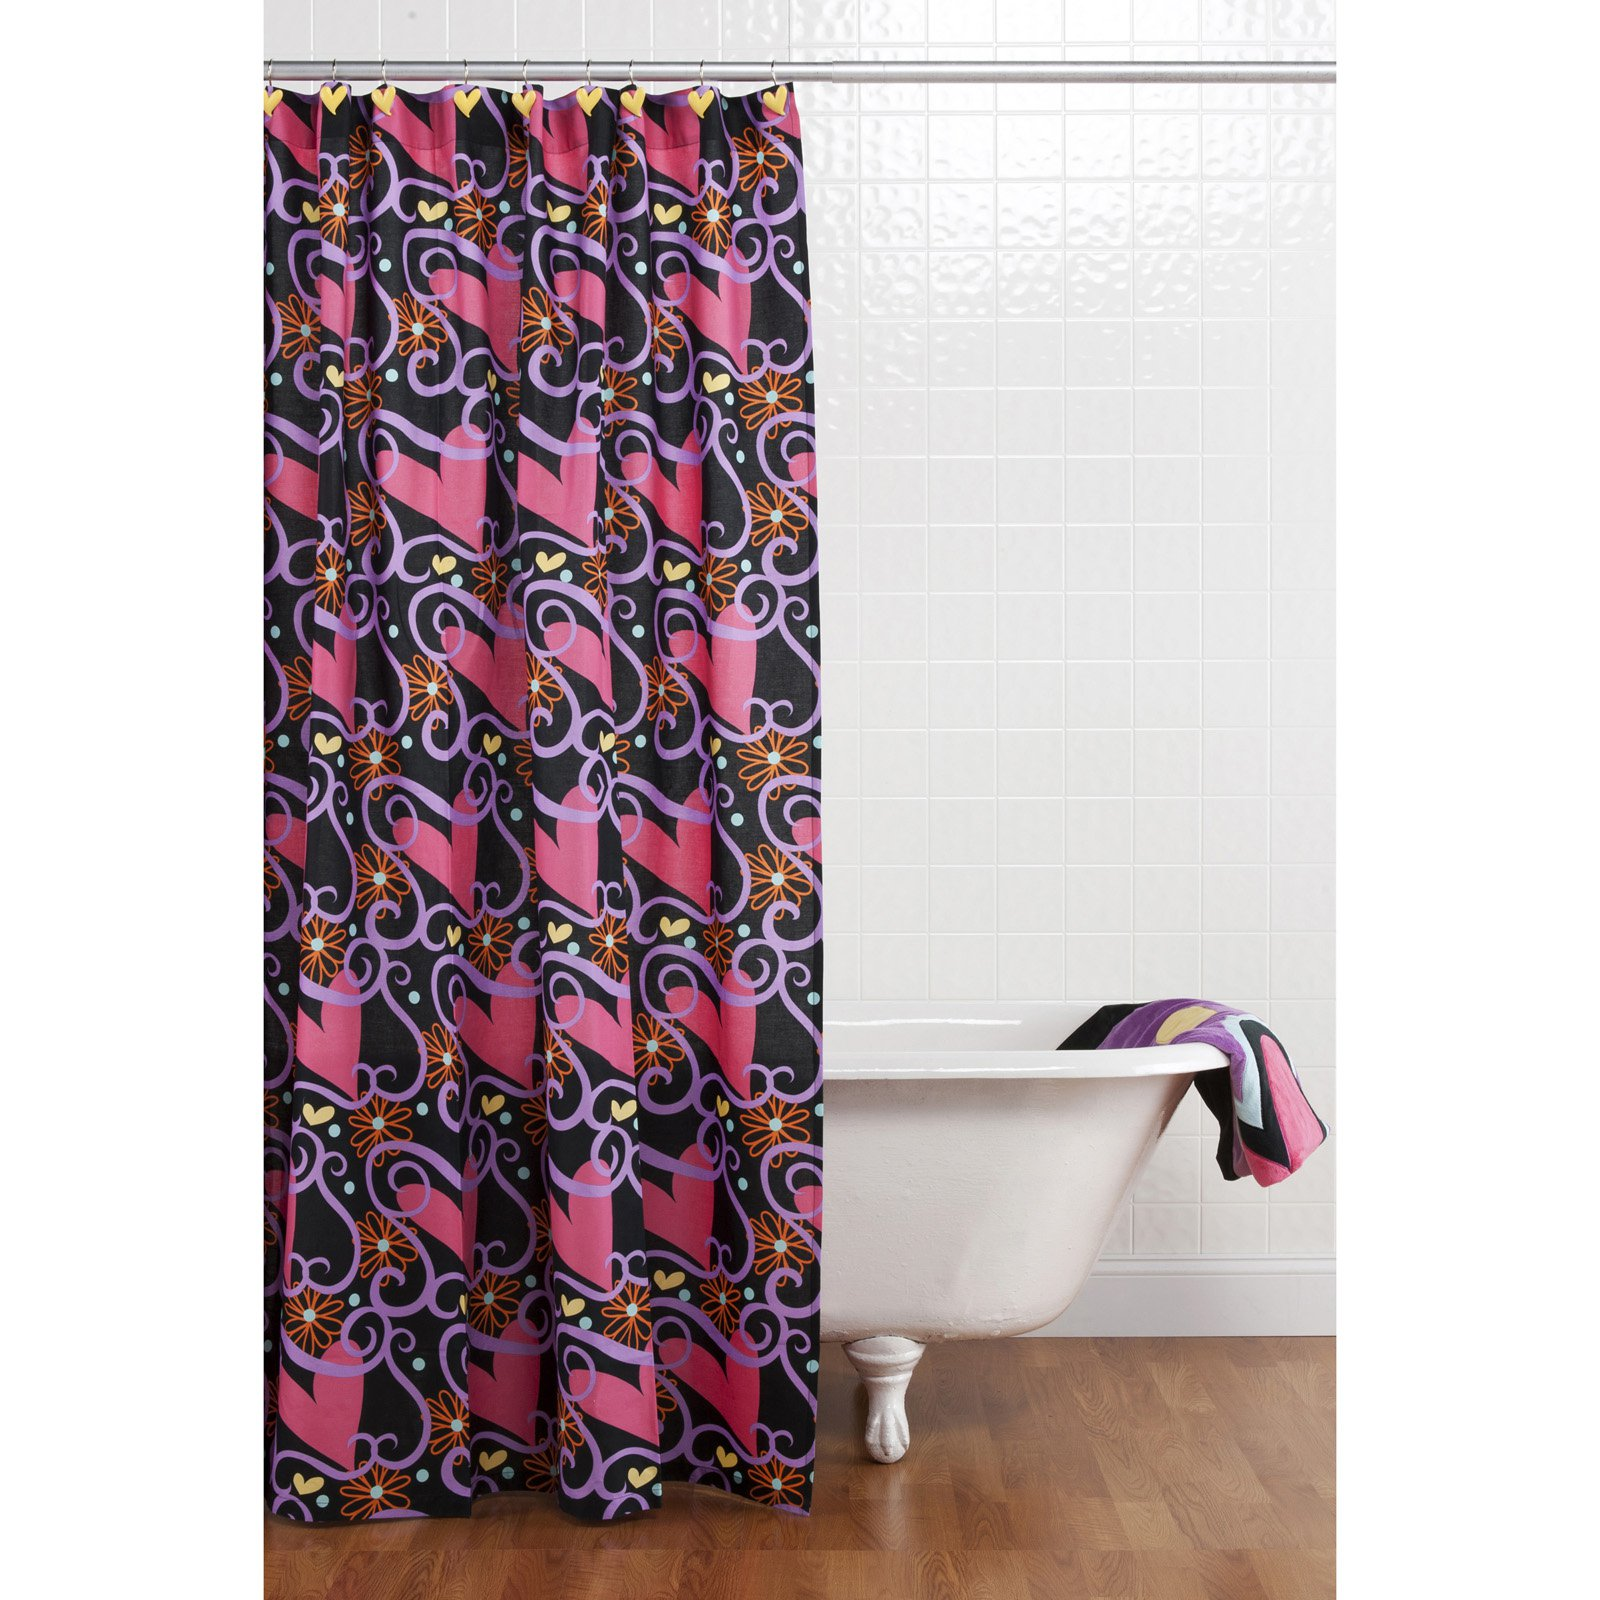 Sassy Shaylee Shower Curtain with Hooks